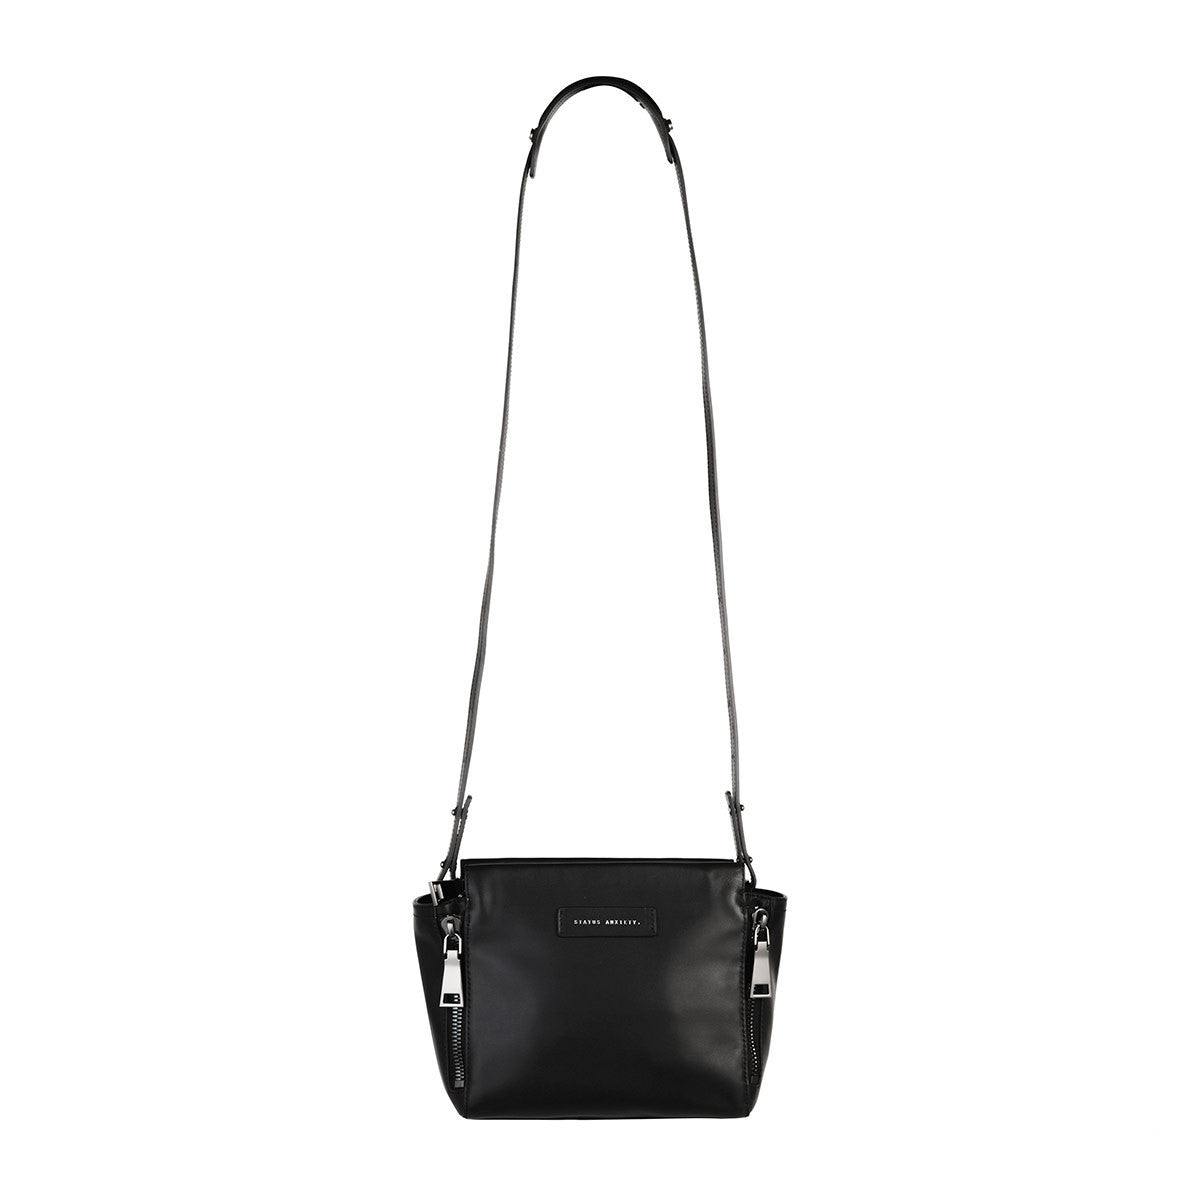 Status Anxiety The Ascendants Black Leather Hand Bag